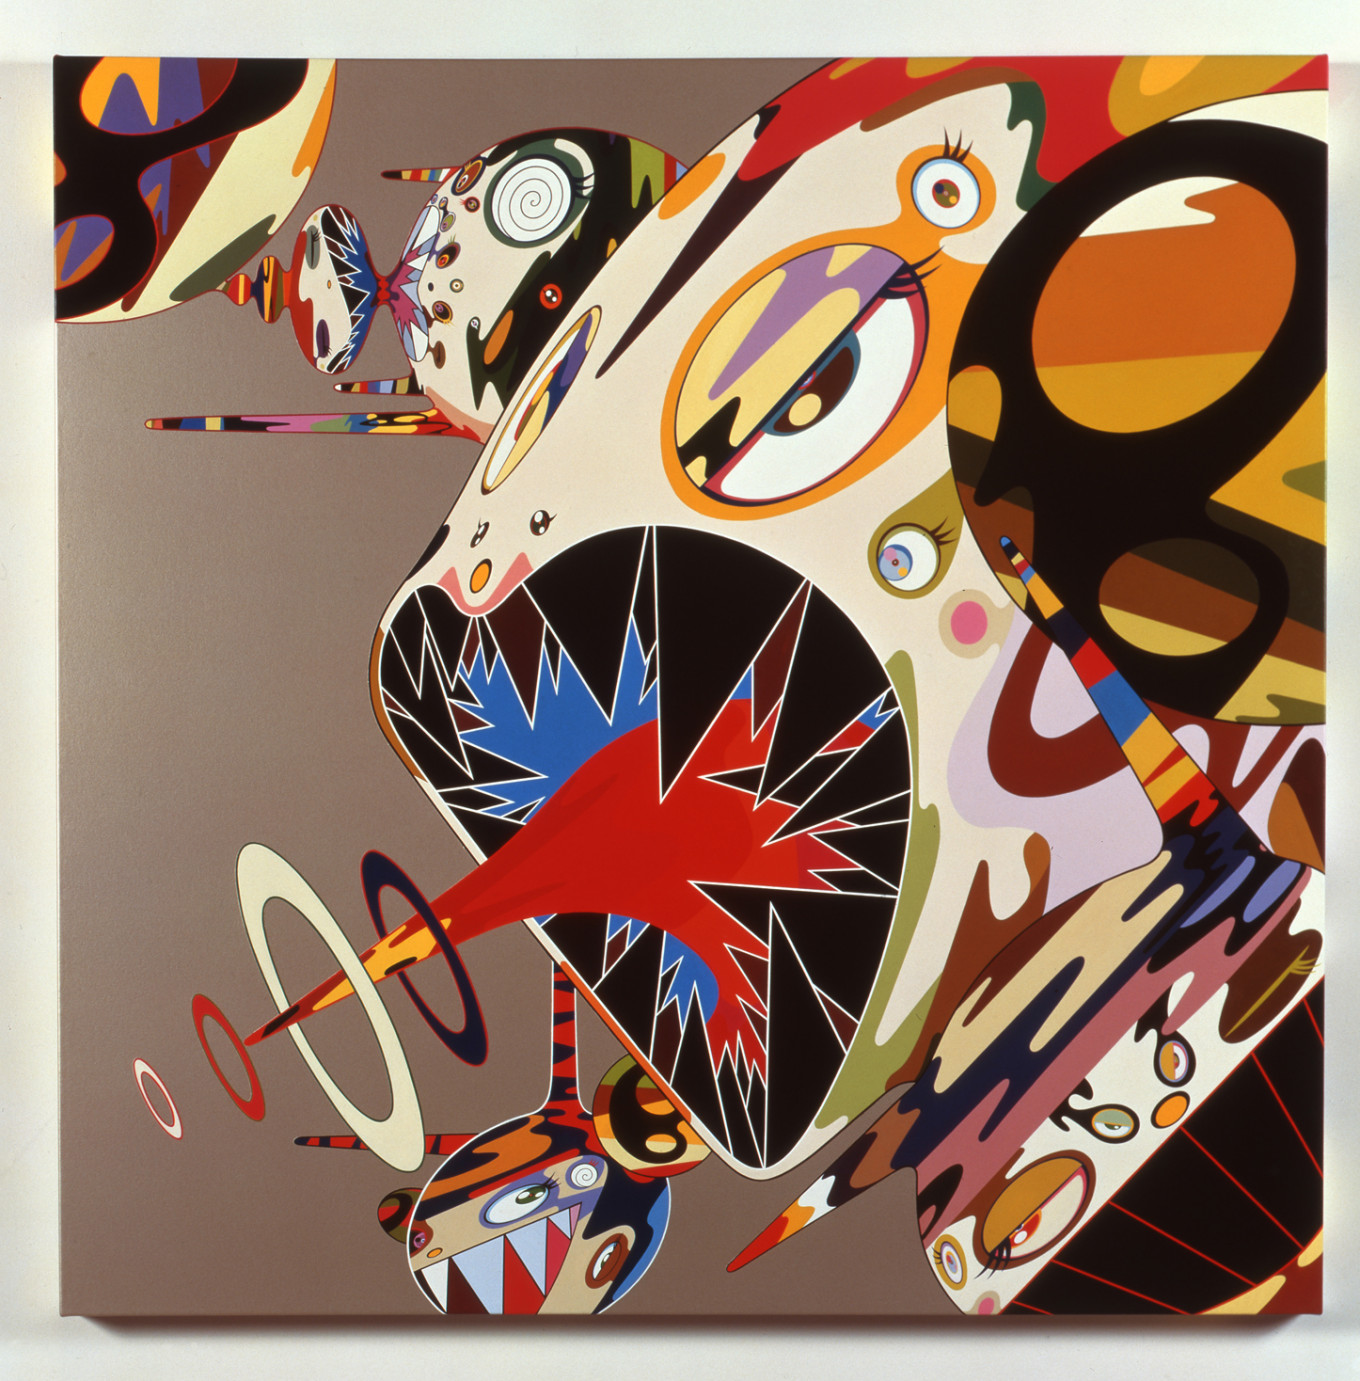 Homage to Francis Bacon (Study of Isabel Rawsthorne), 2002; acrylic on canvas mounted on board; 120 × 120 × 5 cm; private collection.  Courtesy Perrotin © 2002 Takashi Murakami/Kaikai Kiki Co., Ltd. All Rights Reserved.